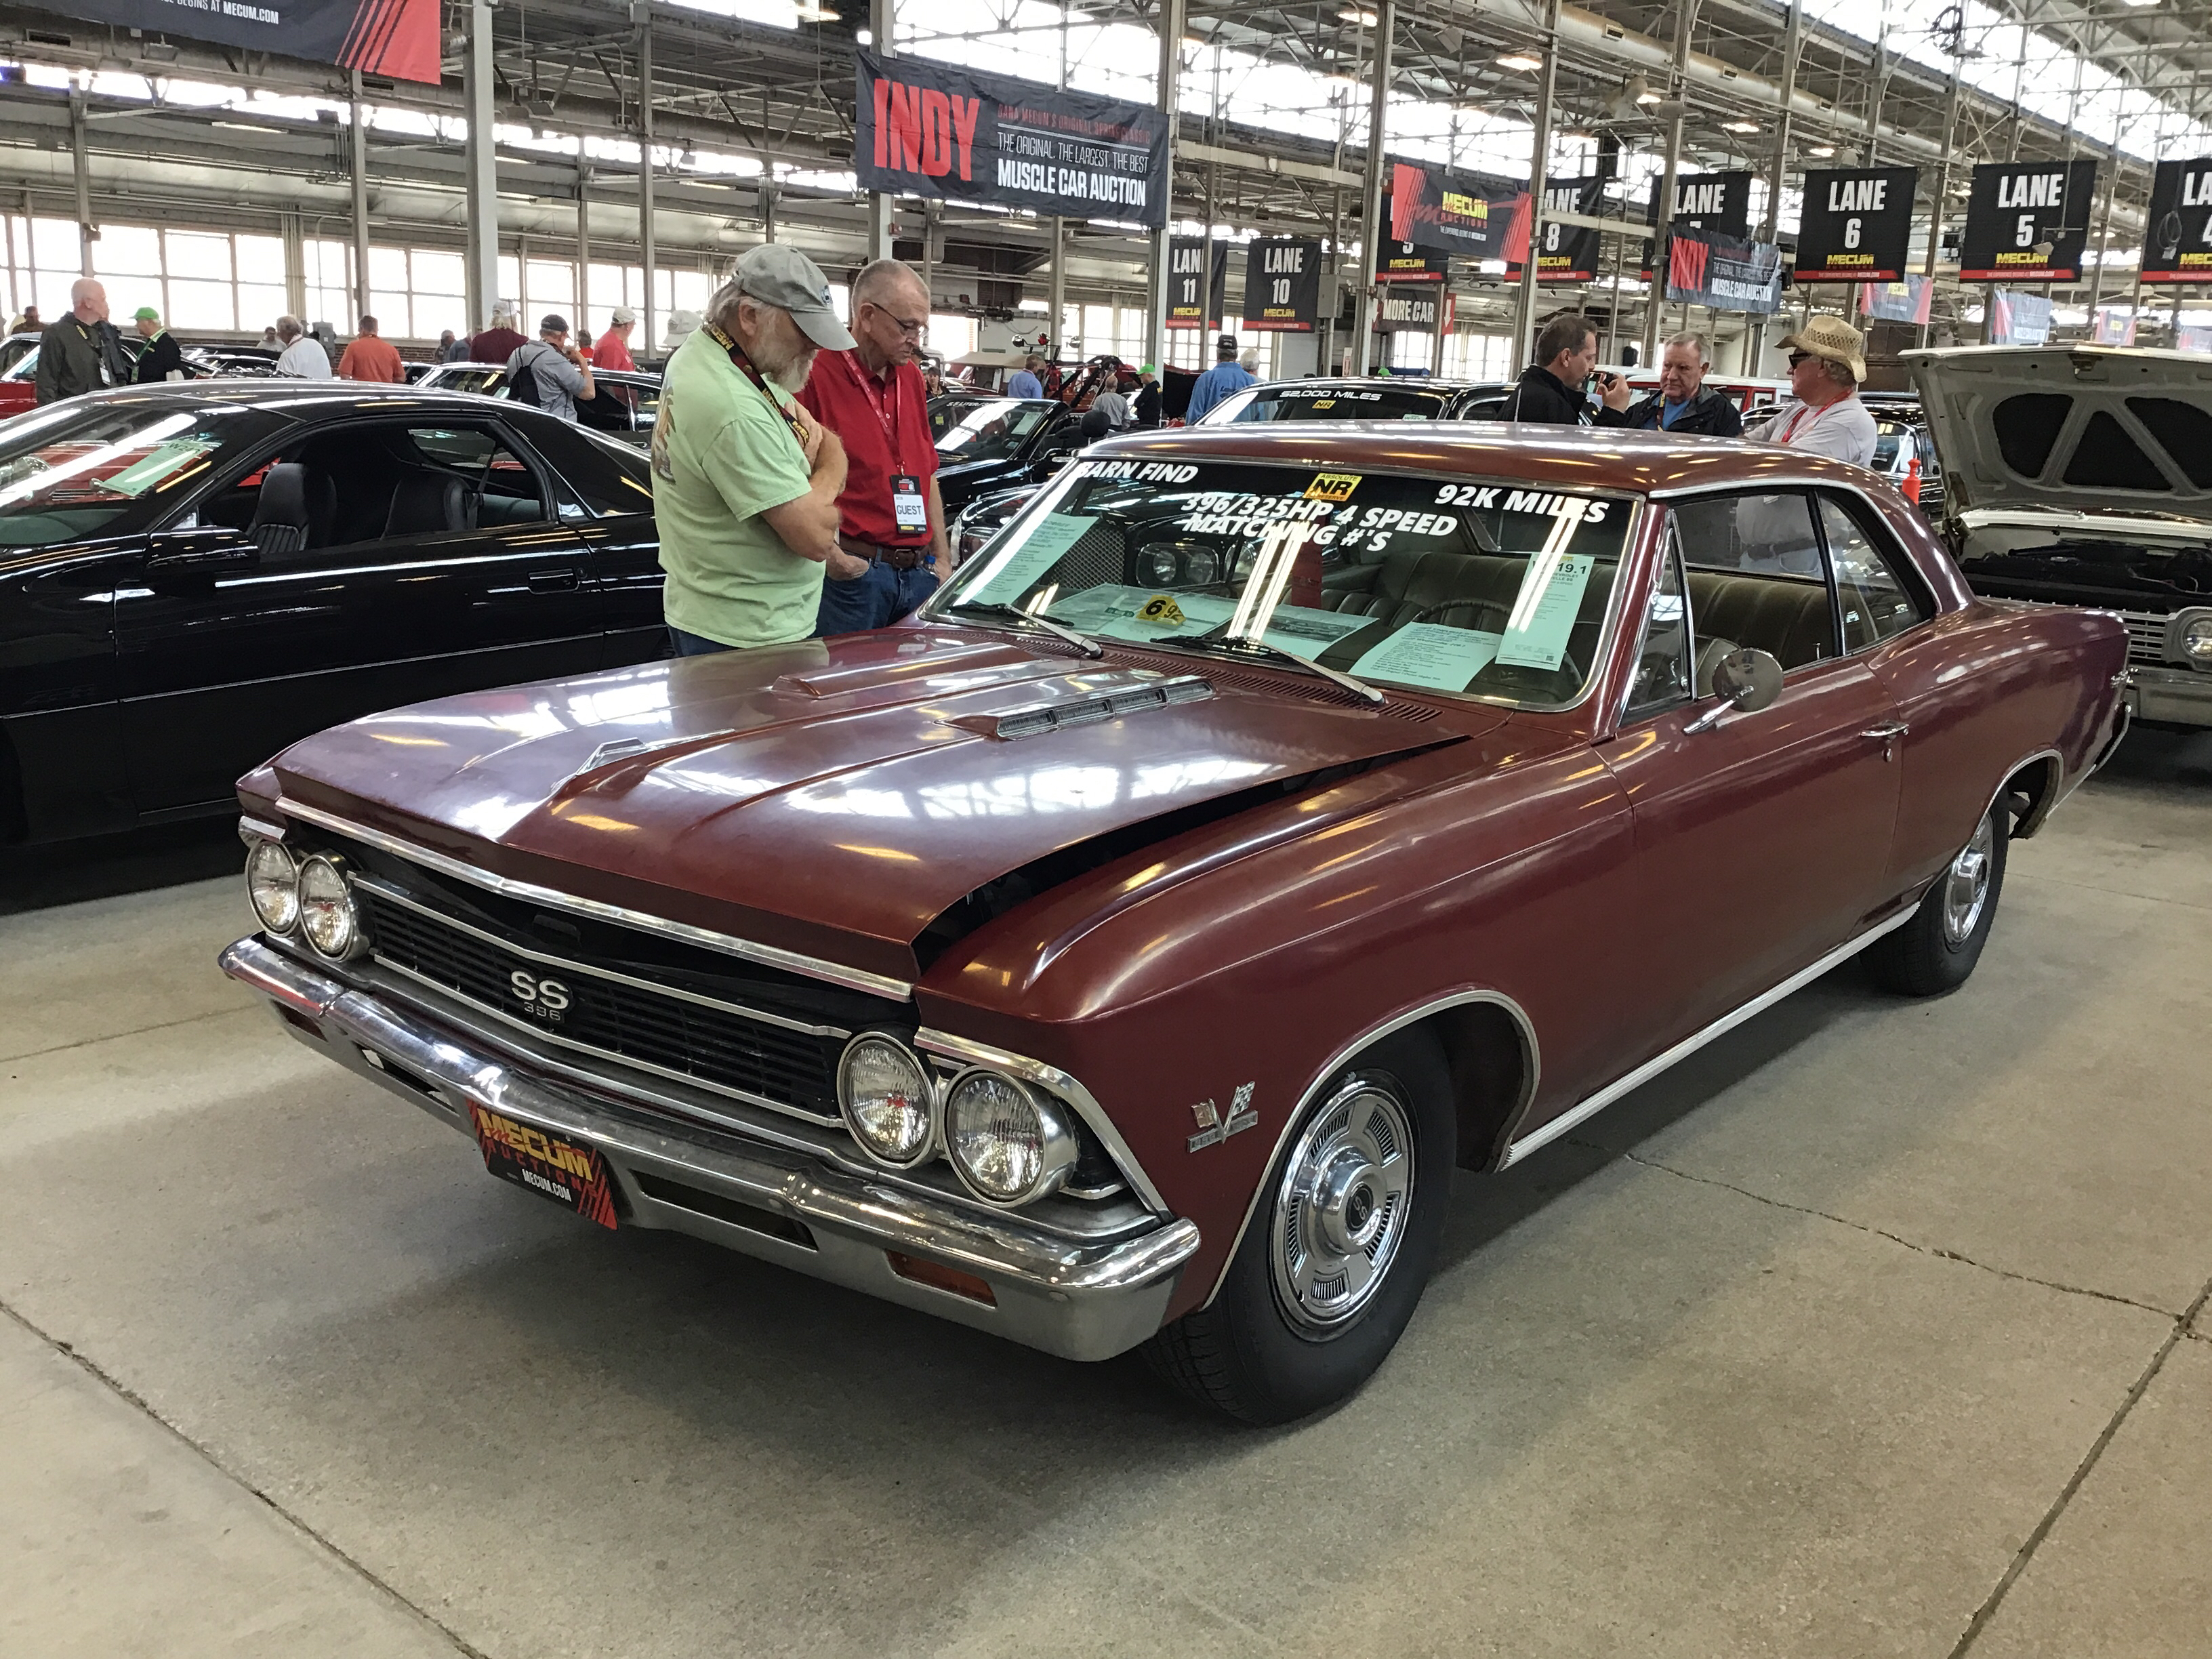 1966 Chevrolet Chevelle 300 Values | Hagerty Valuation Tool®